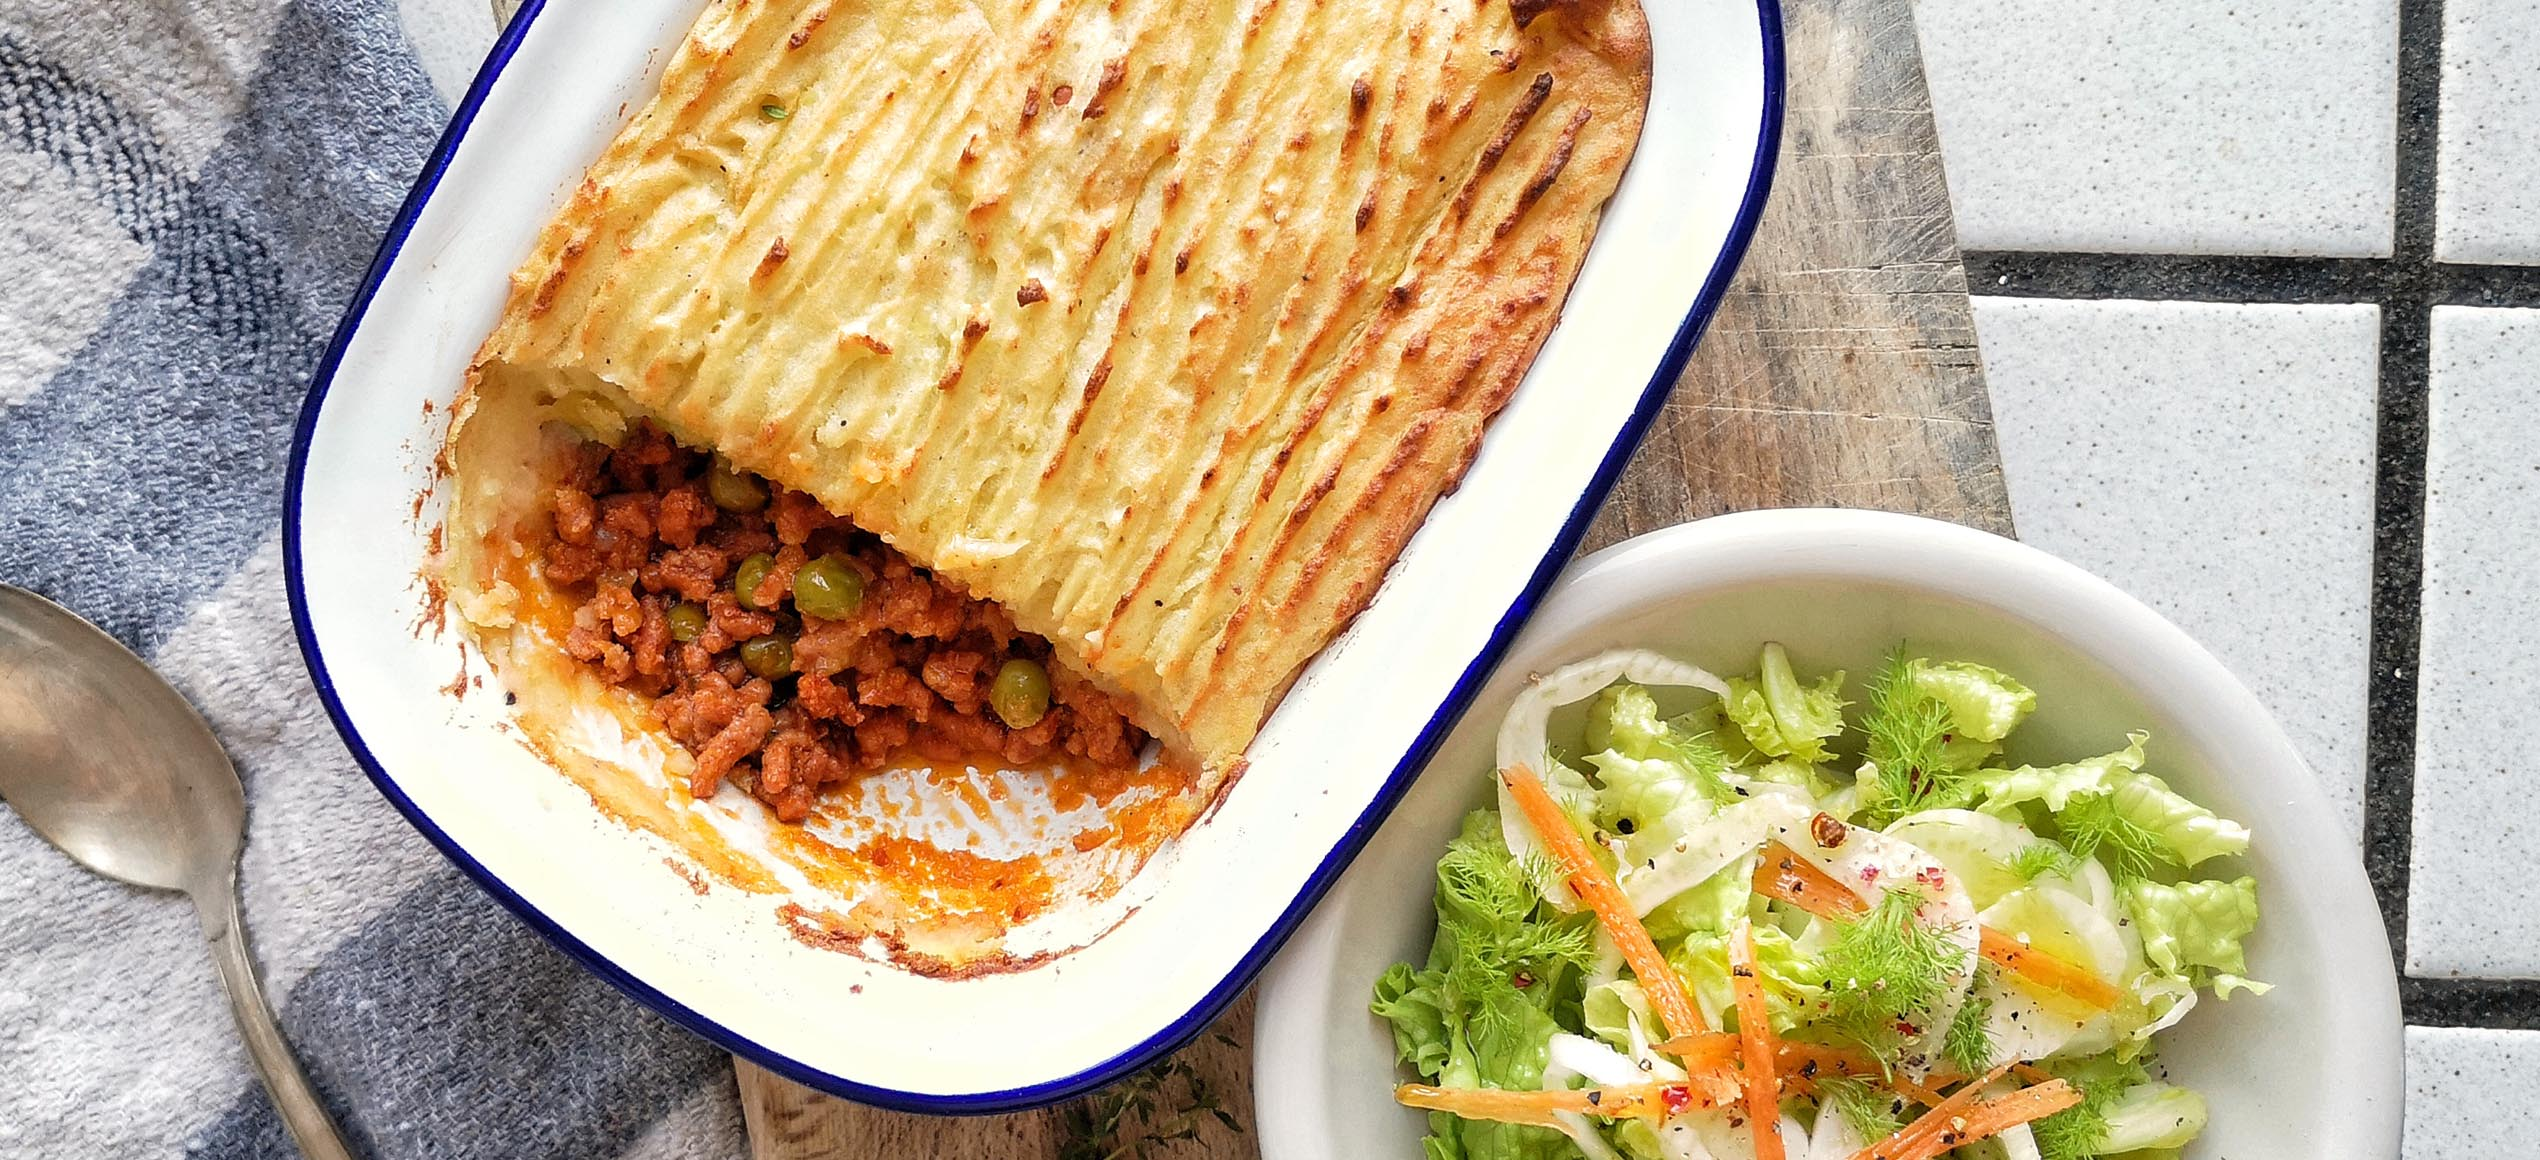 Cottage pie & Shepherd's pie